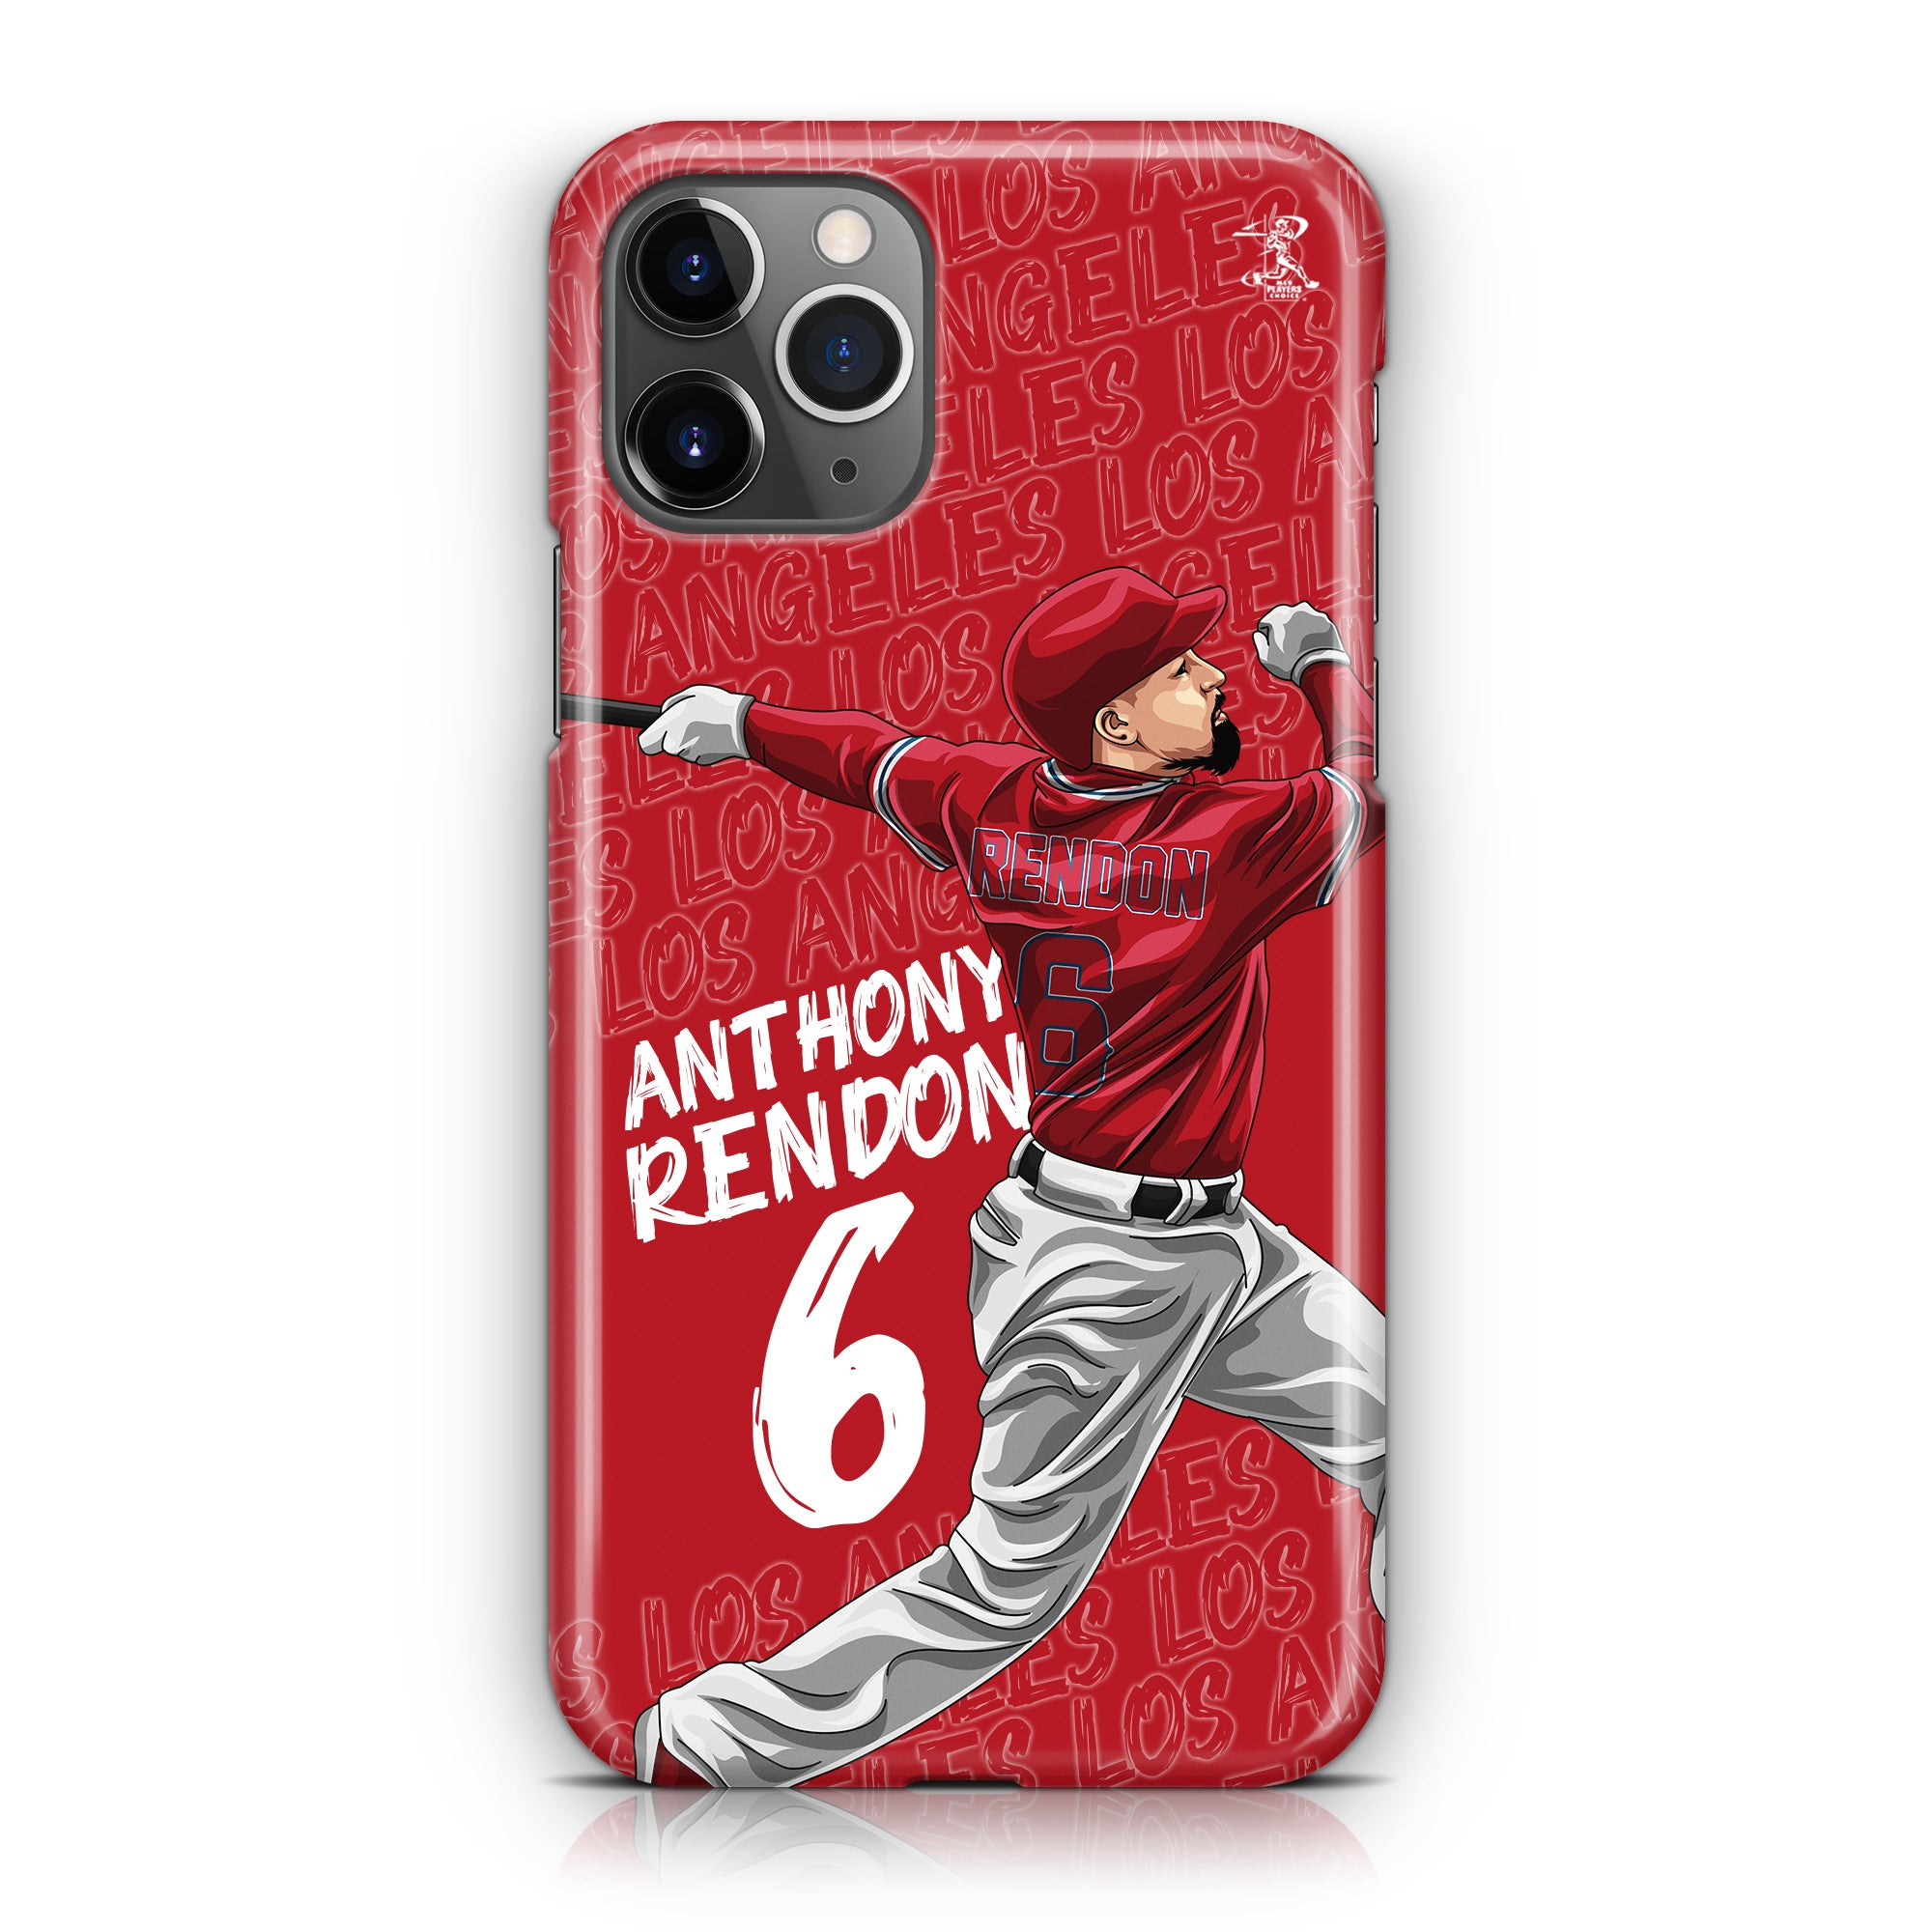 Rendon Star Series 2.0 Case